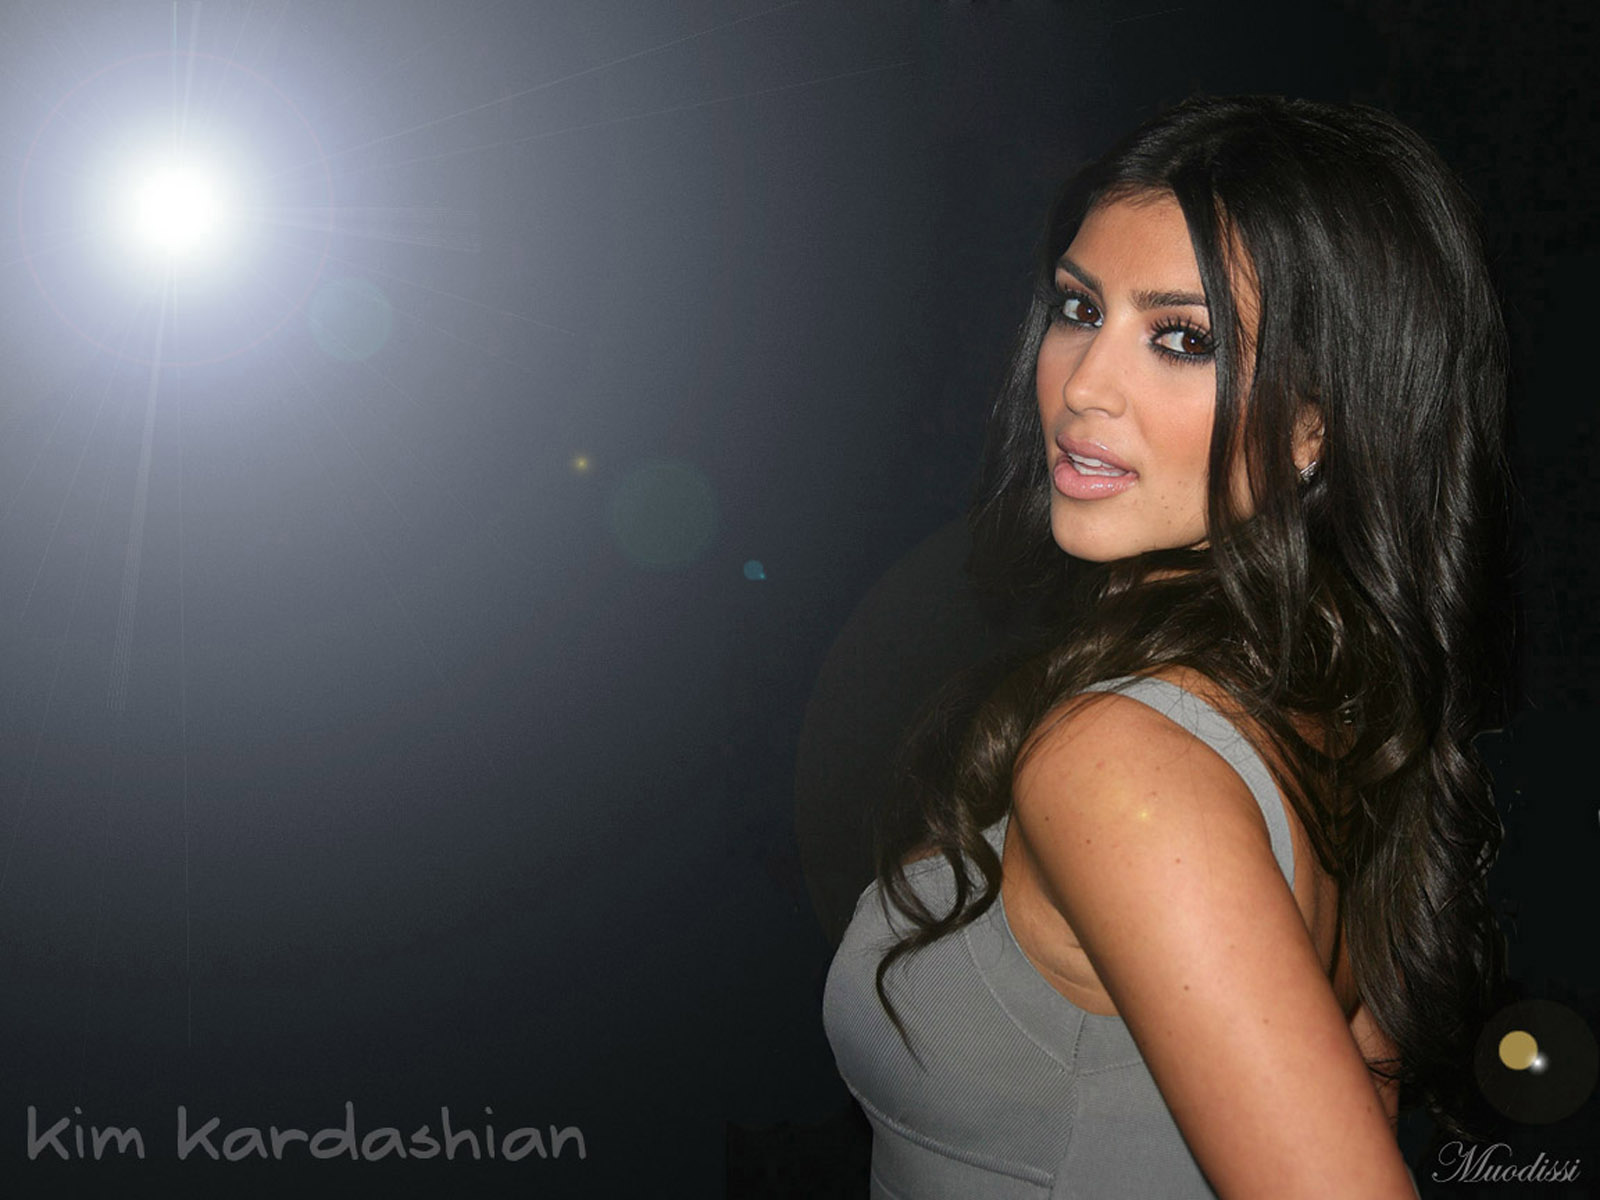 All Wallpaper Kim Kardashian wallpapers 1600x1200